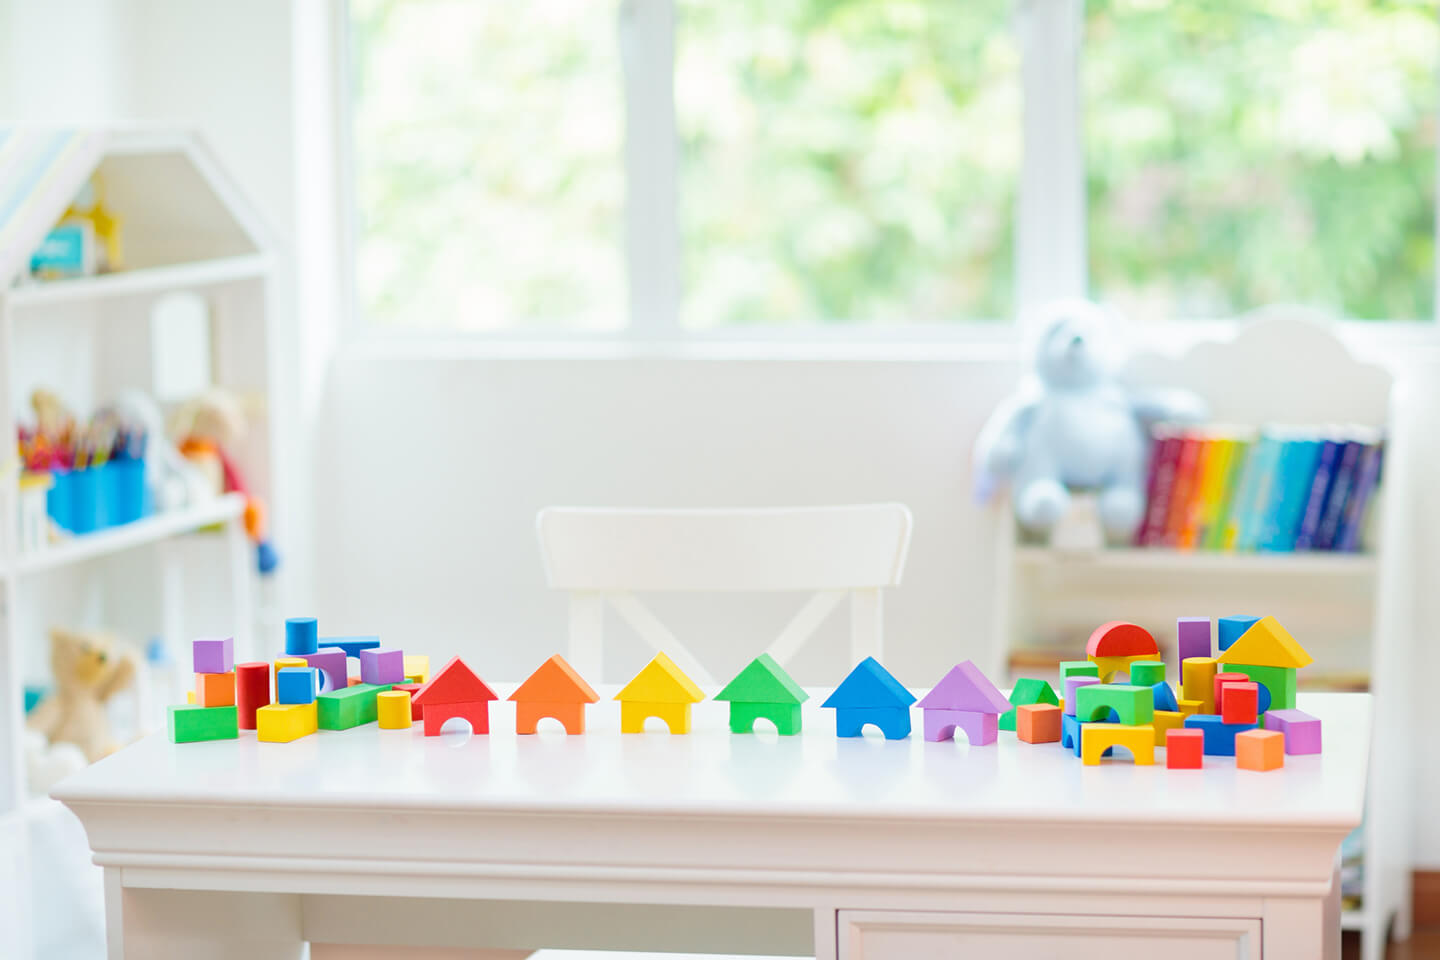 Toy blocks on a table in a childcare center in Blacktown, Liverpool in Sydney